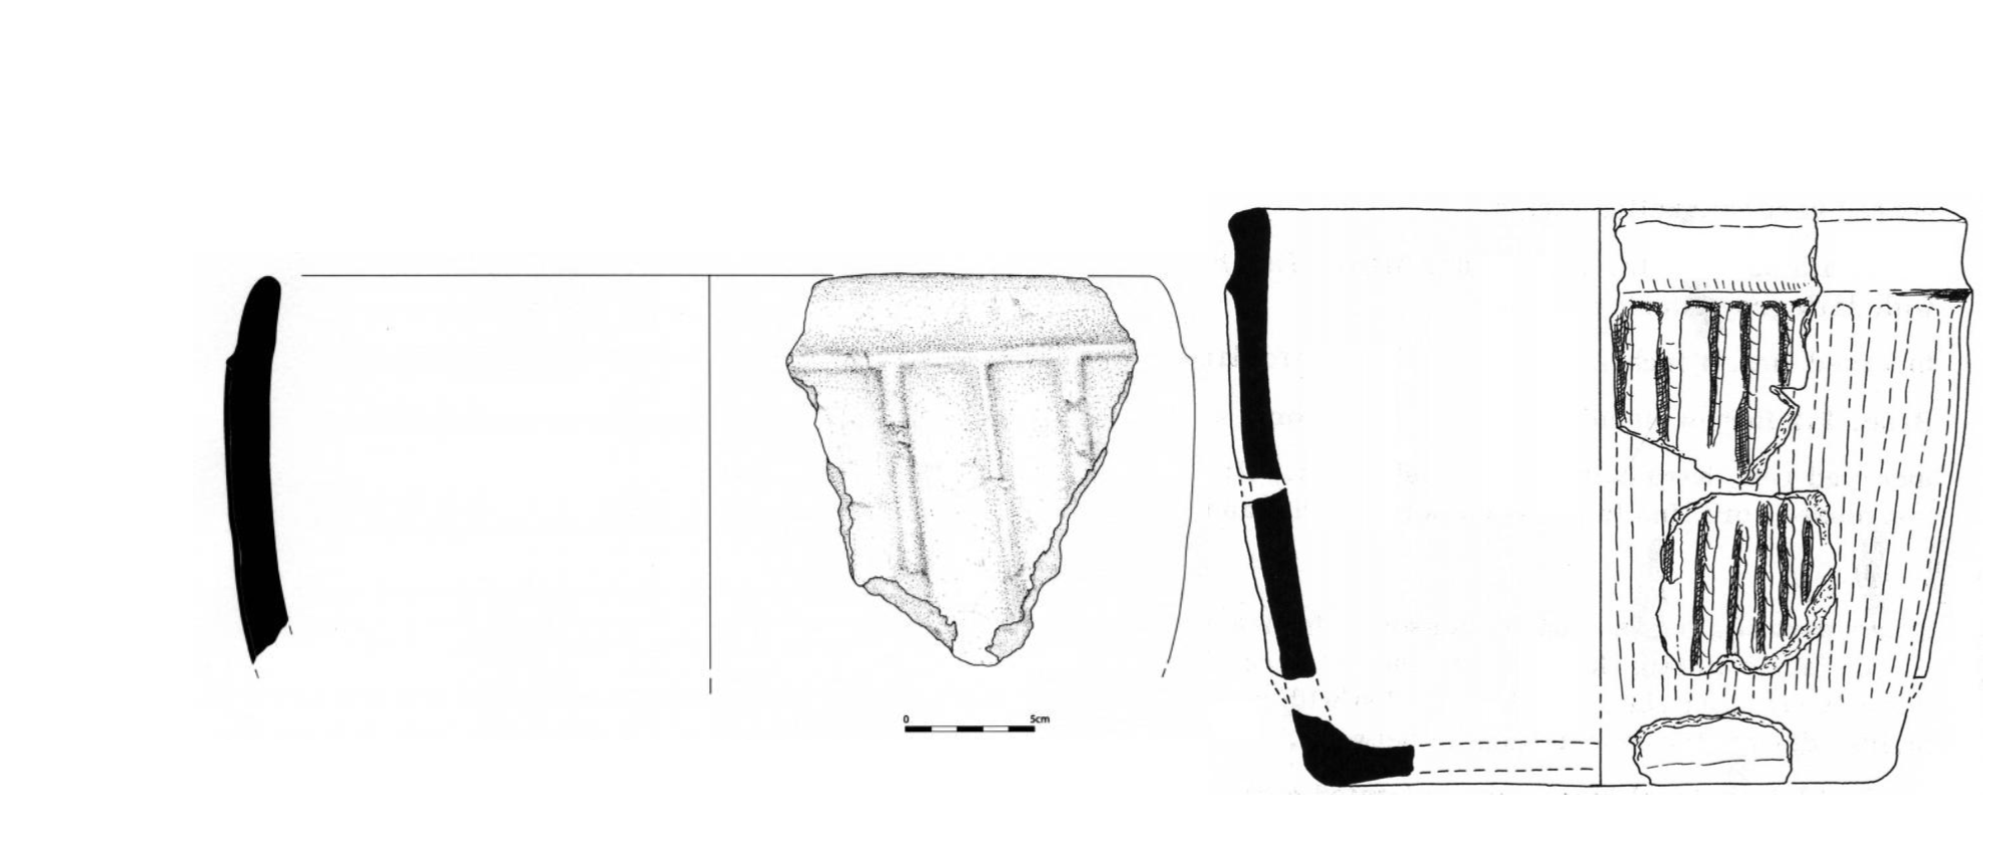 Illustration drawings of two Grooved Ware pots with the same decoration on the body and rim reconstructed from sherds